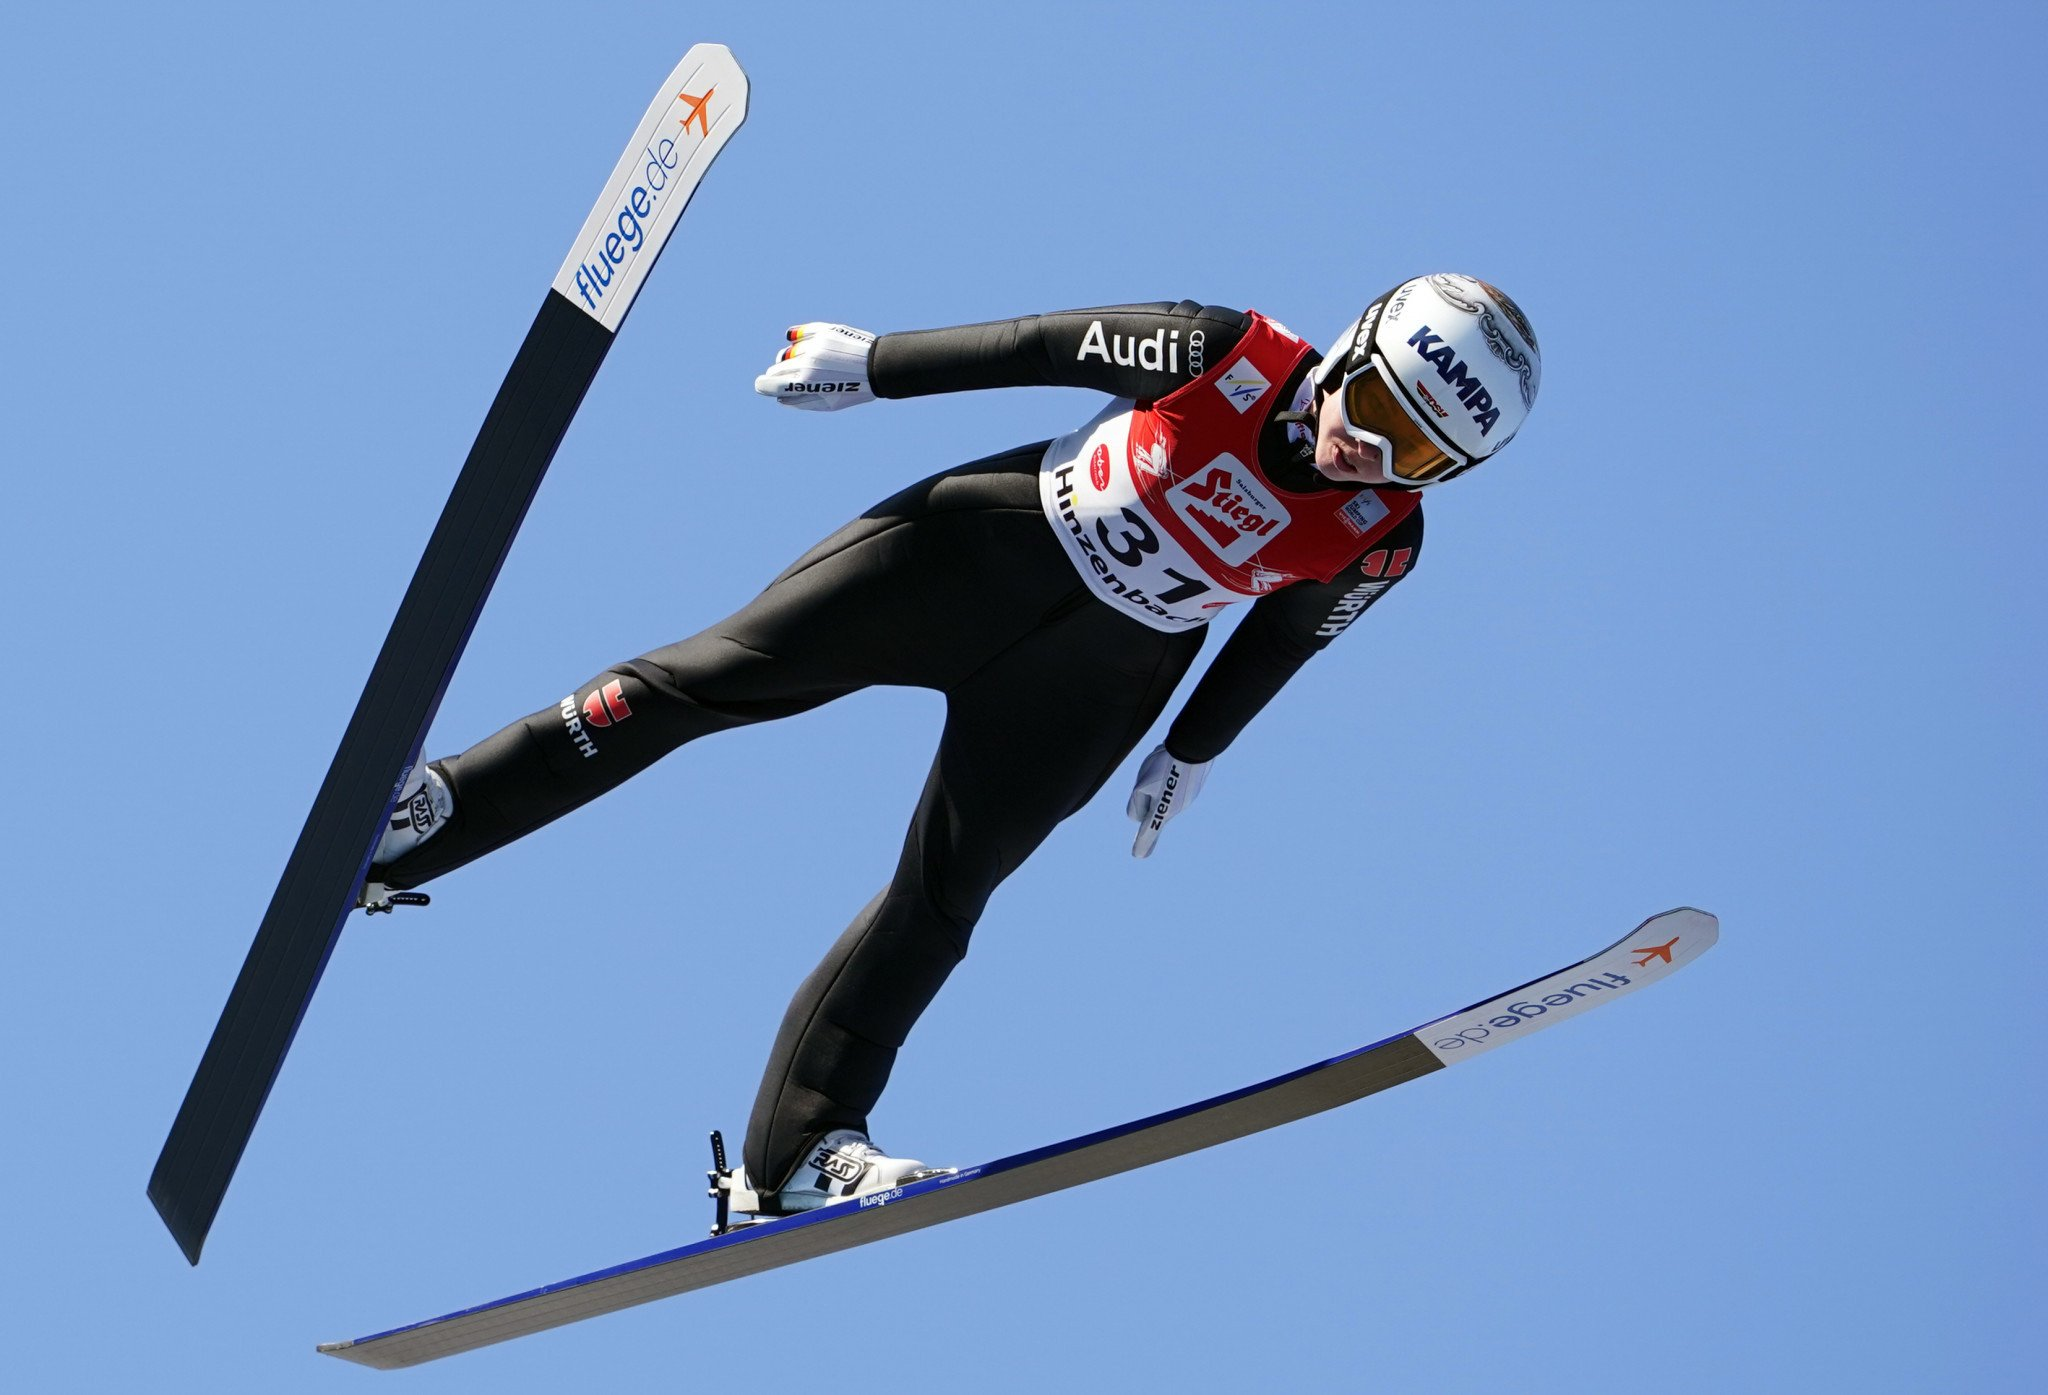 Women's large hill ski jumping confirmed for World Championships debut in 2021